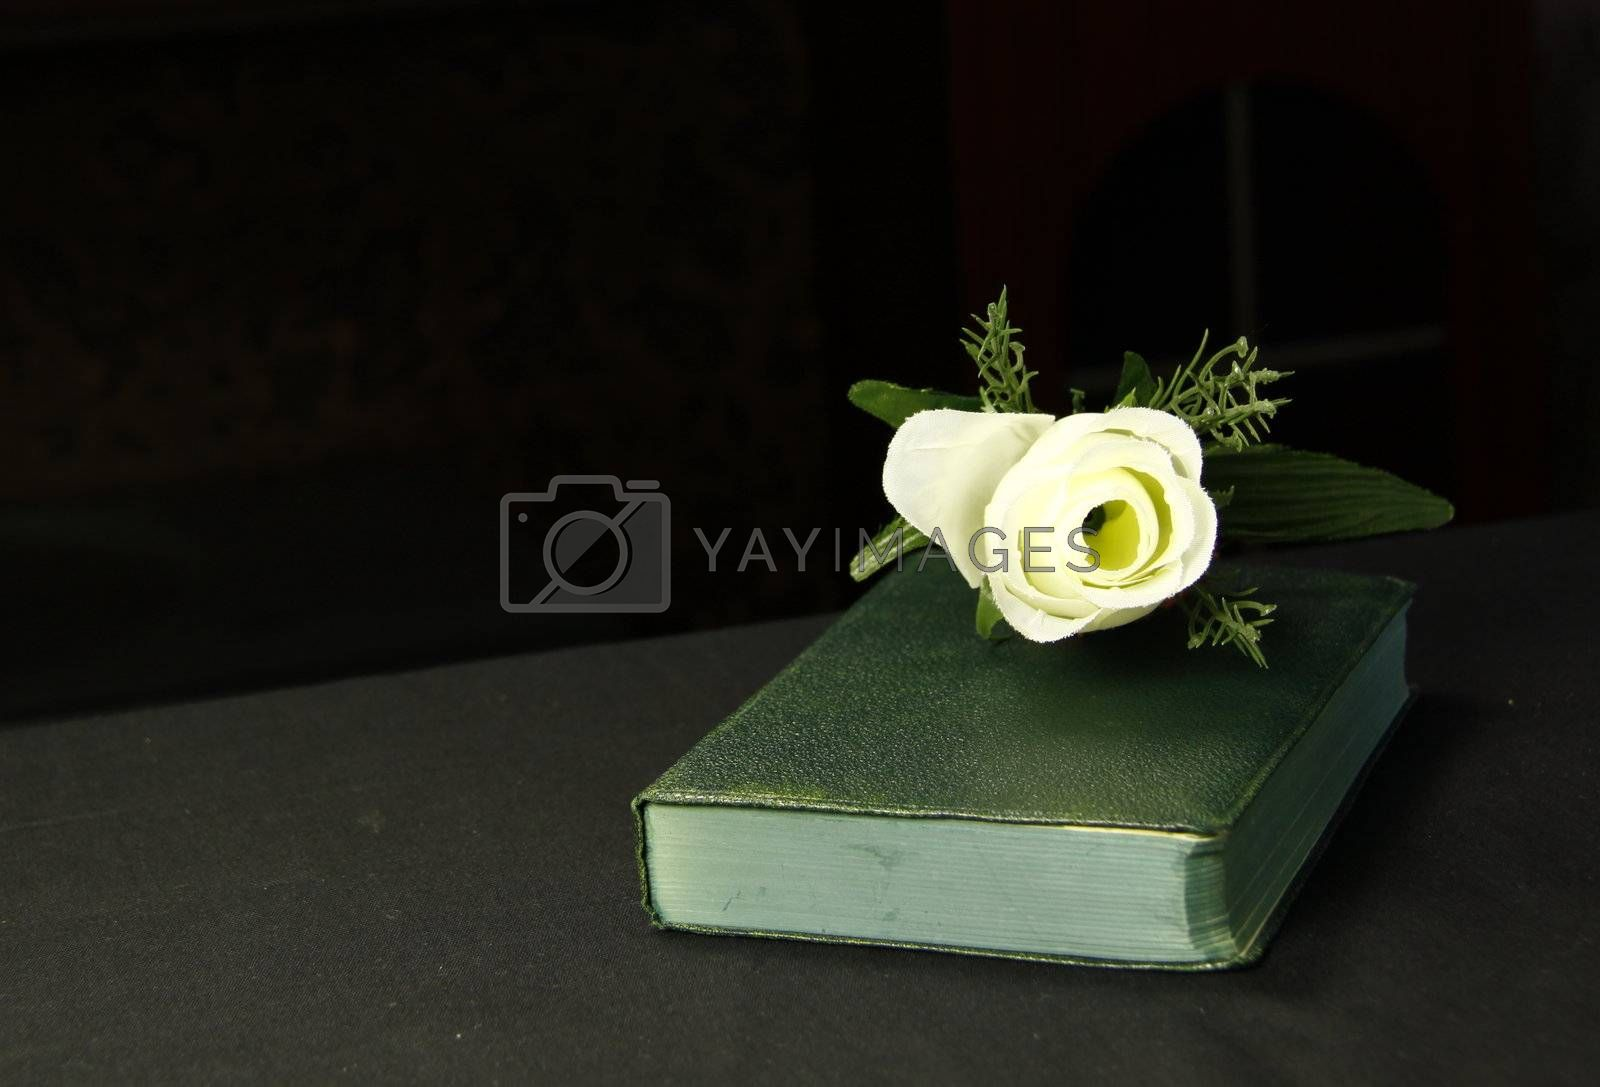 a rose next to a book depicting it could be a romantic novel